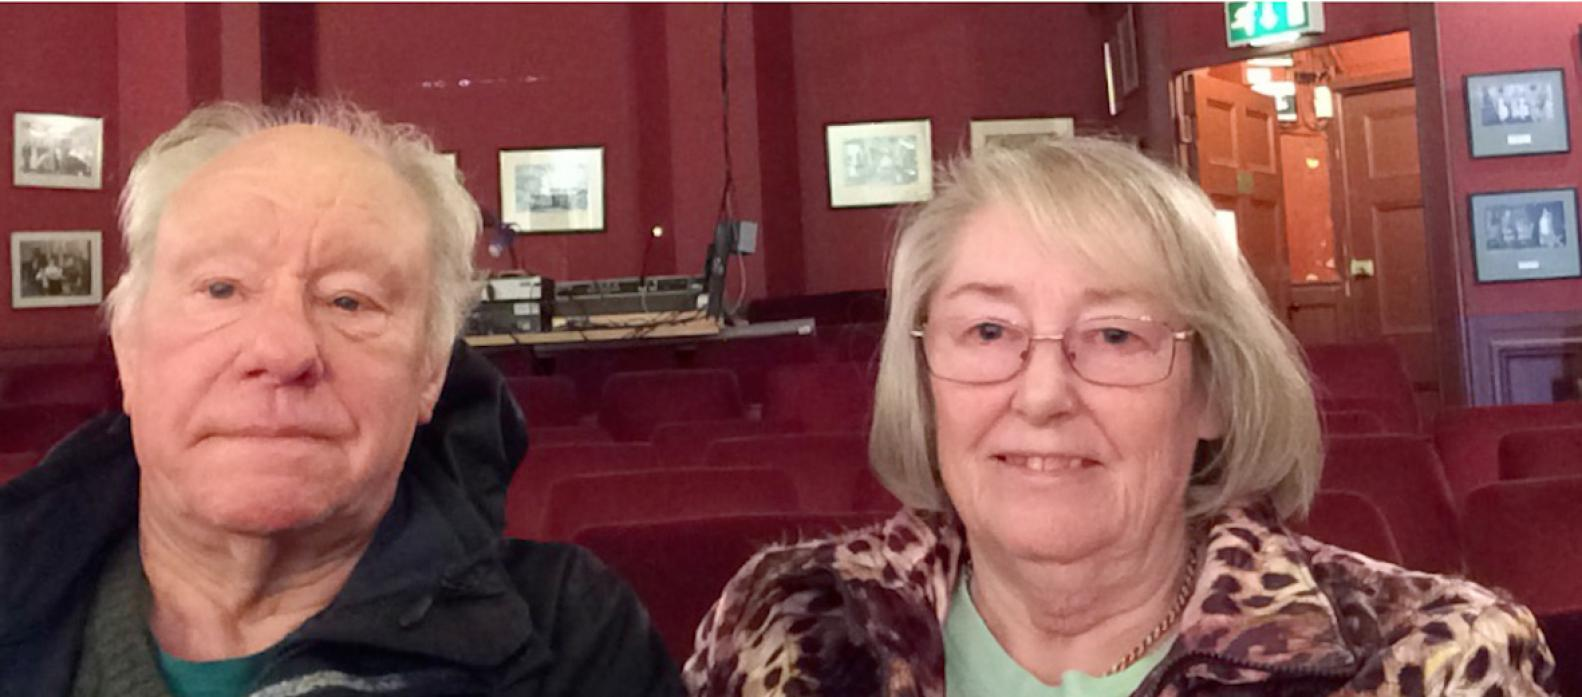 SHOW WILL GO ON: Above, longstanding members of Gainford Drama Club John and Ronnie Lowery